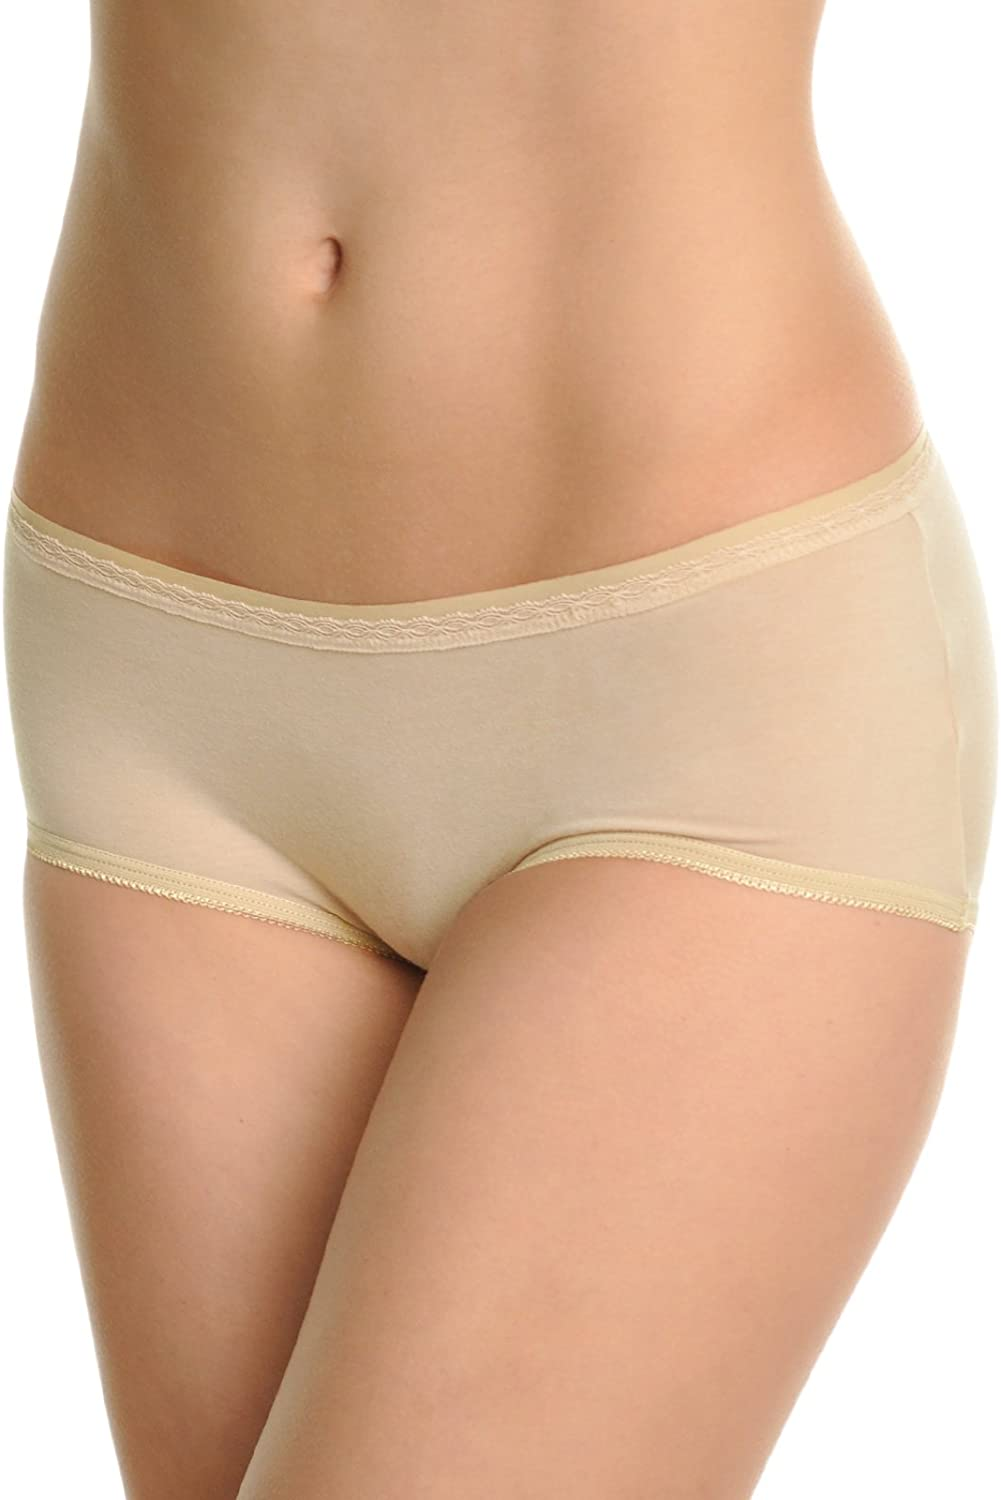 Angelina Direct List price store Women's Assorted Solid Color Cotton Bikini Pant Spandex